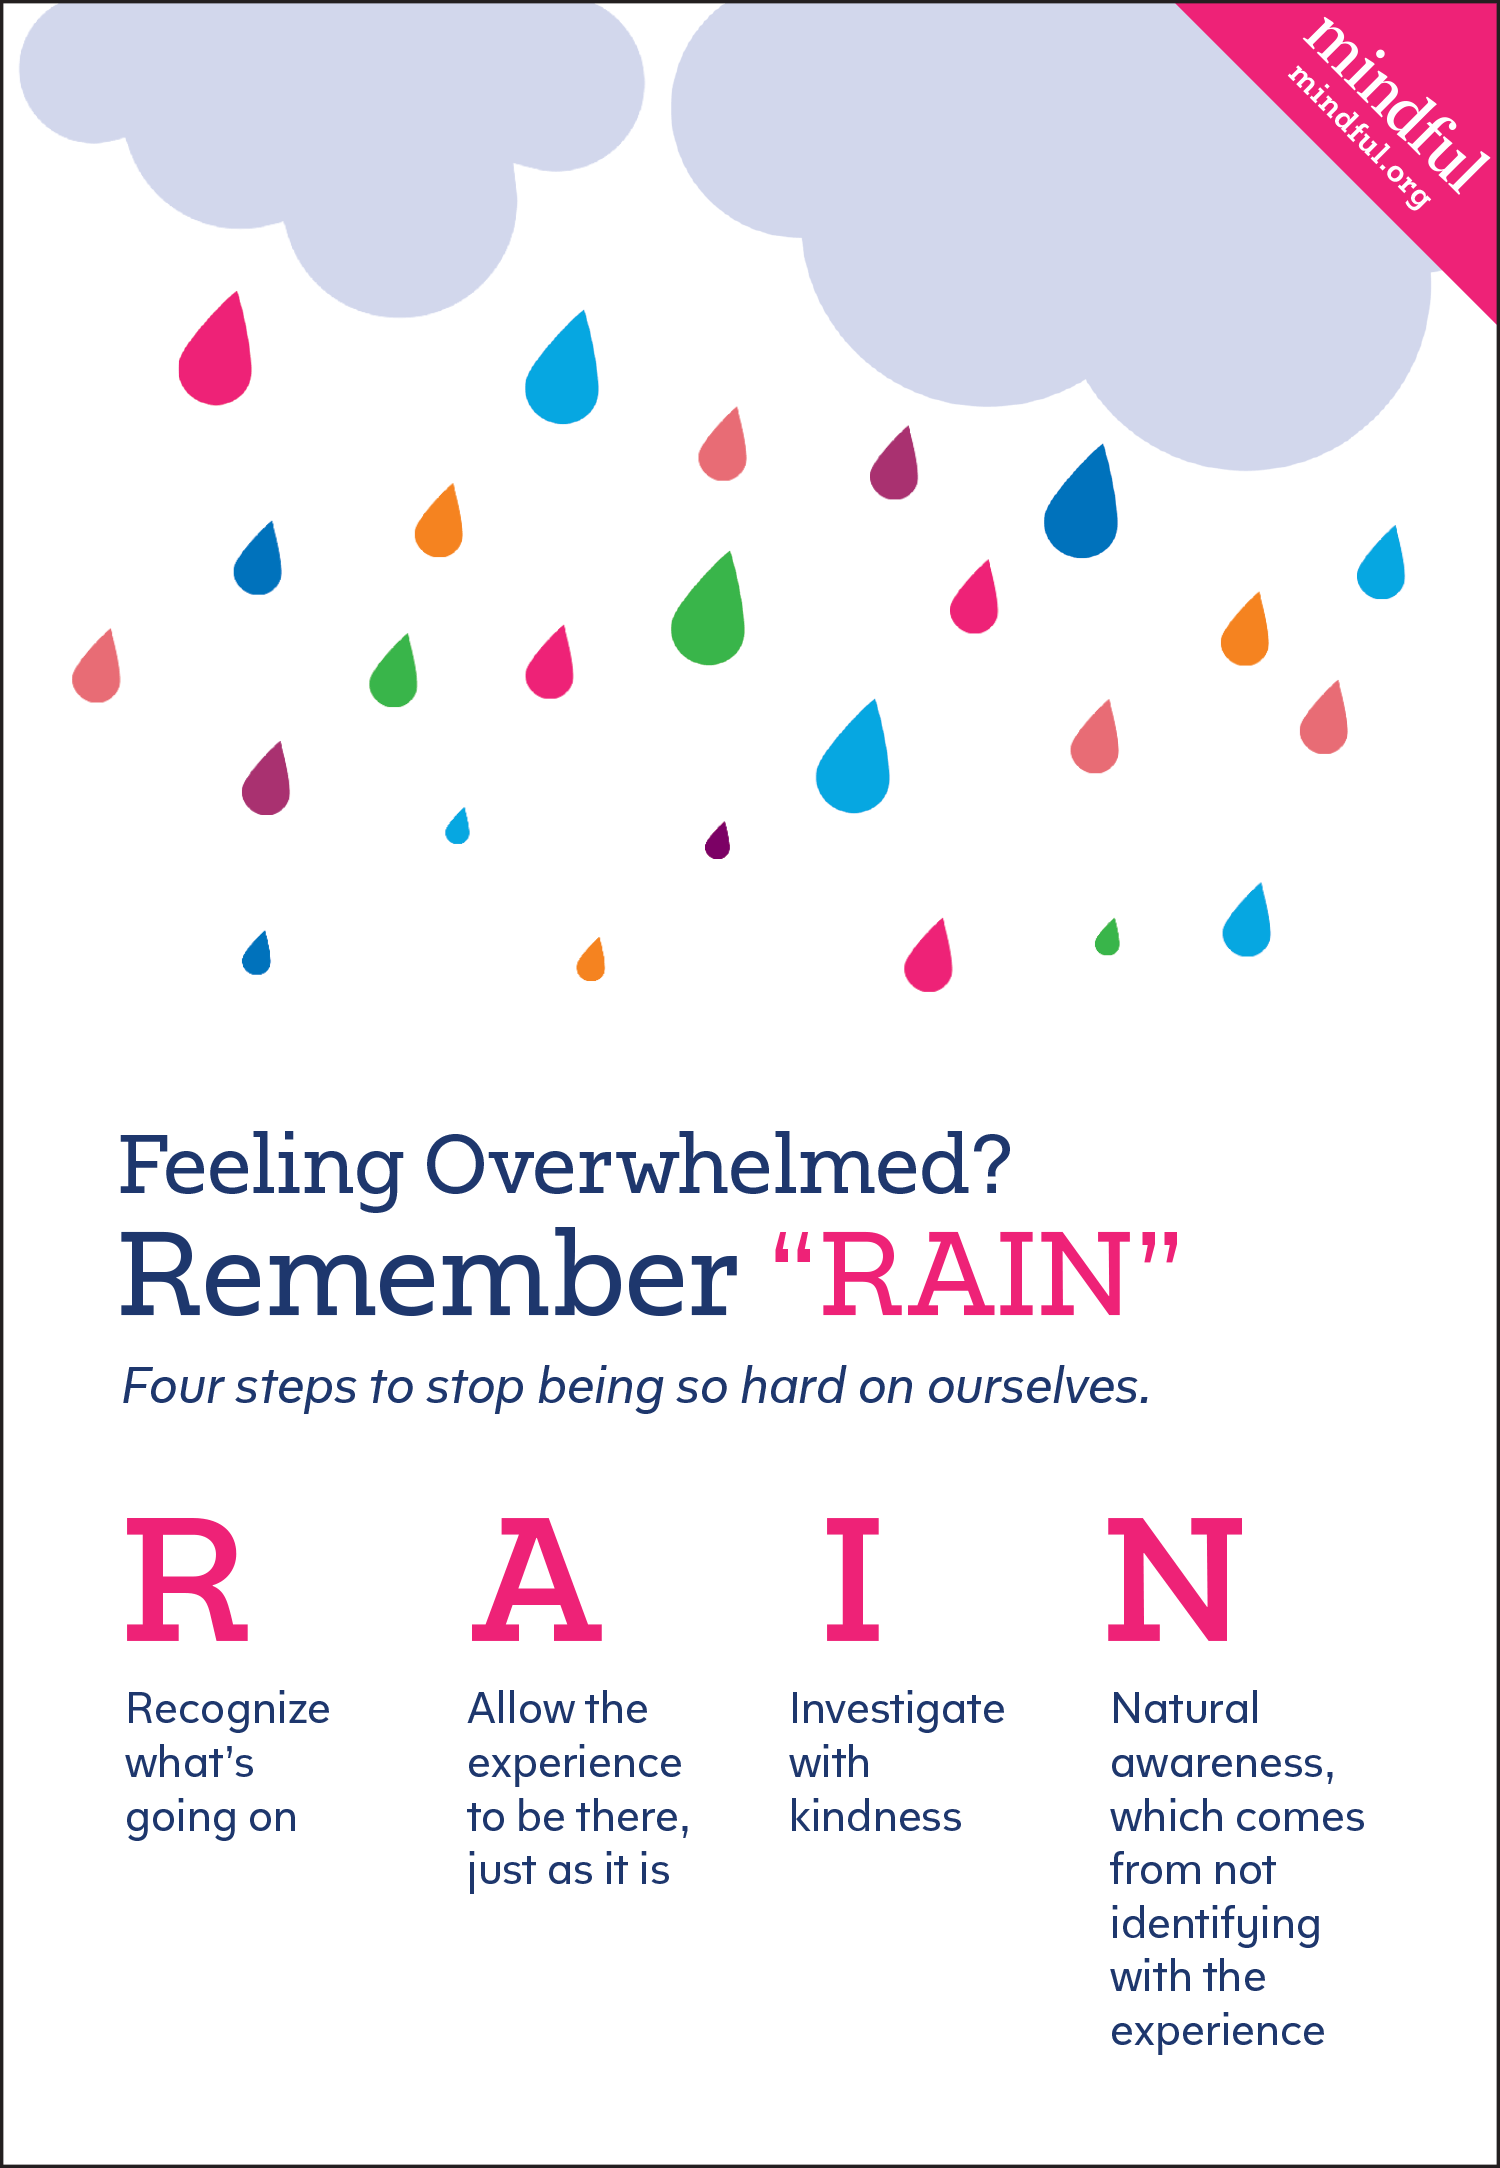 How To Be More Mindful Feeling Mentally Stuck Use Rain As A Means To Bring Out Your Natural